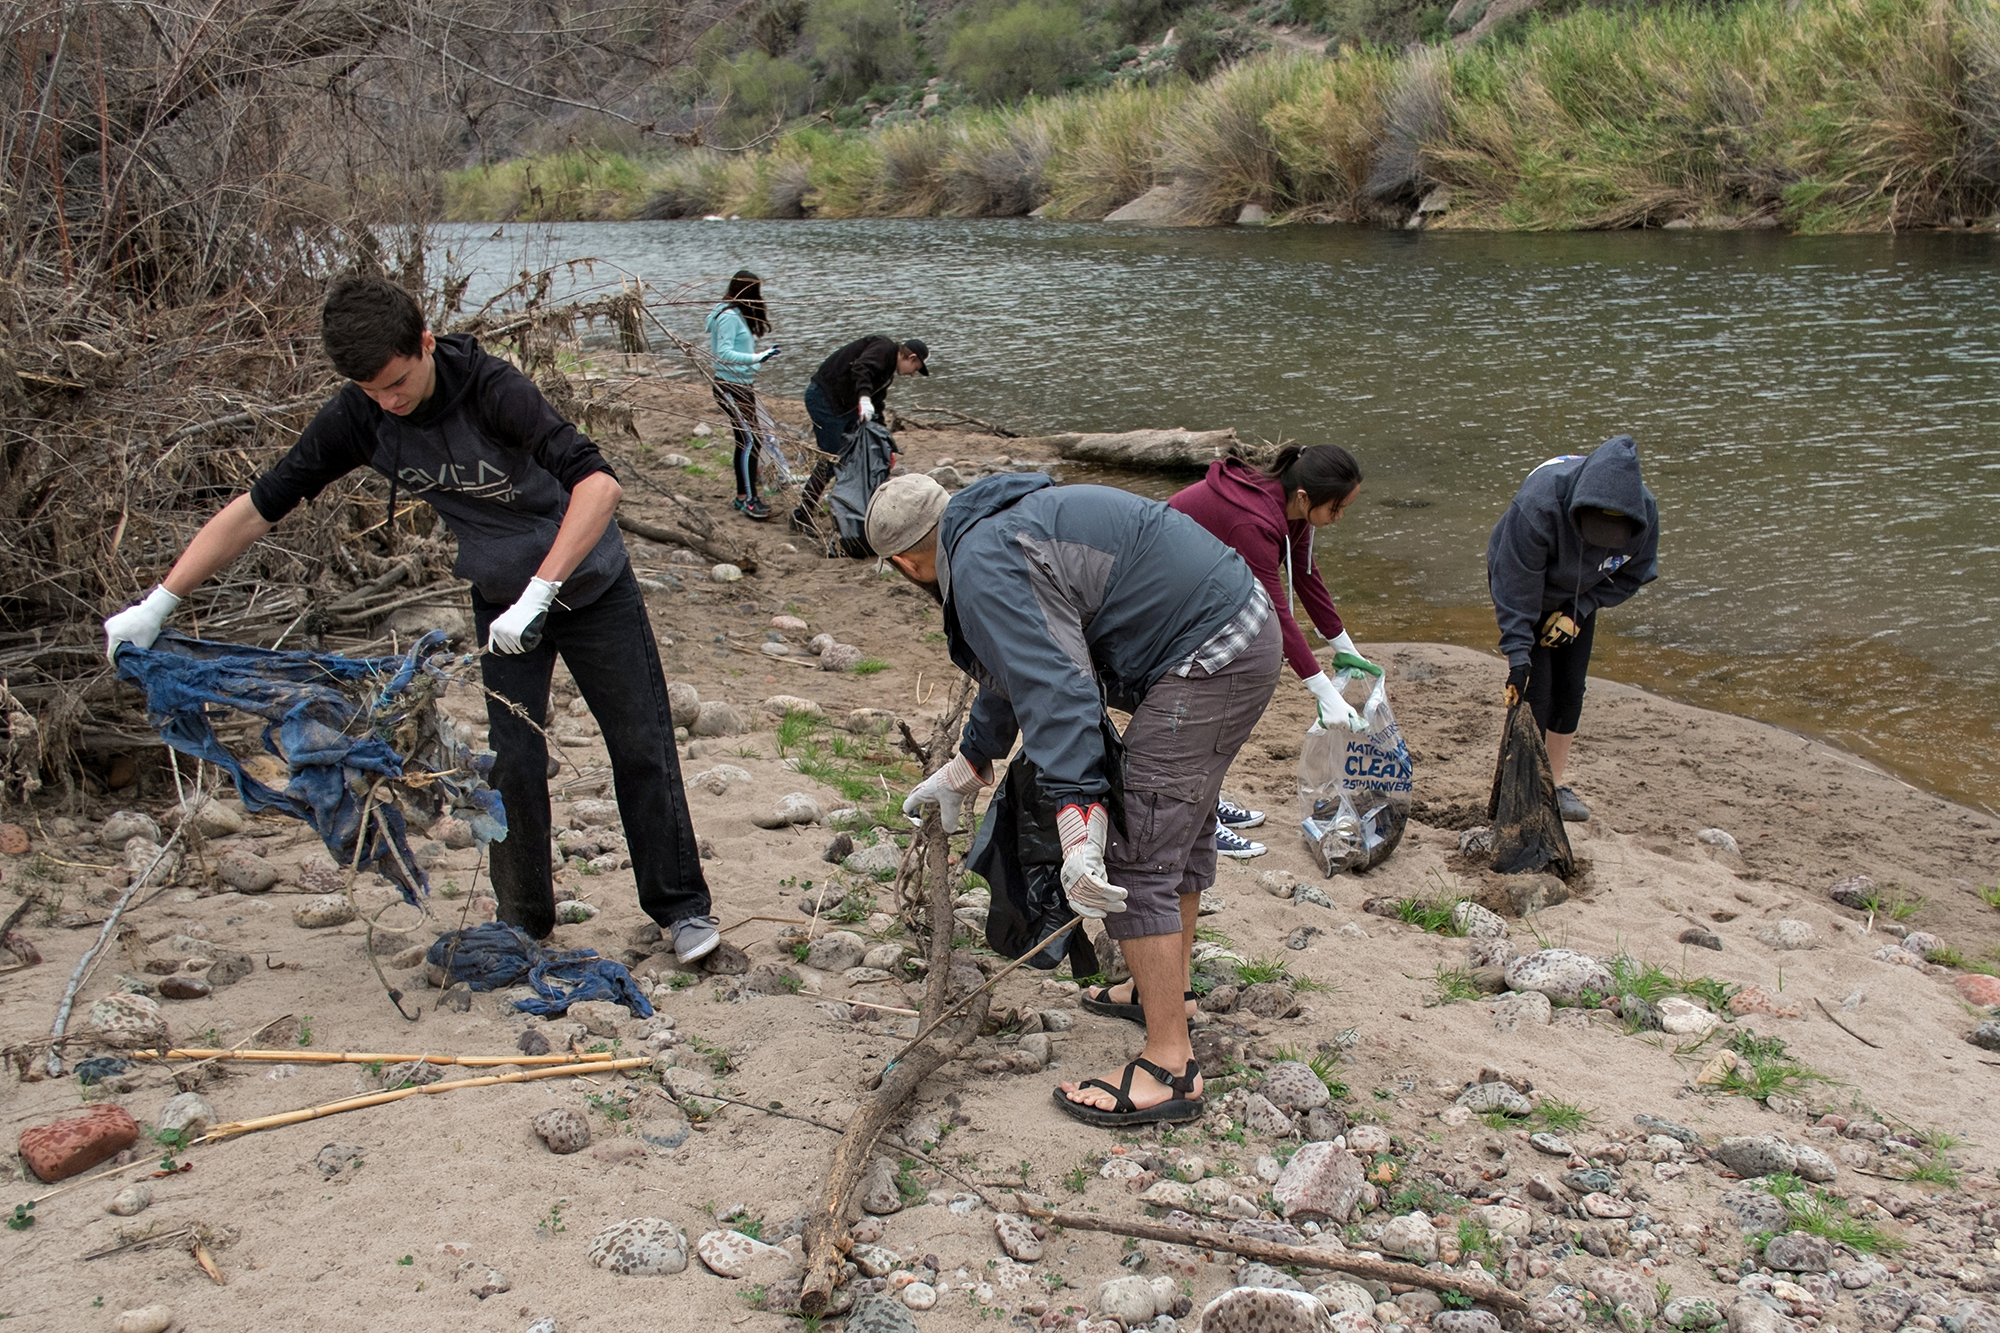 02/18/17 - Lower Salt River Cleanup with volunteers at Phon D Sutton, Sheep's Crossing, & Blue Point.Click HERE to view the entire restoration.